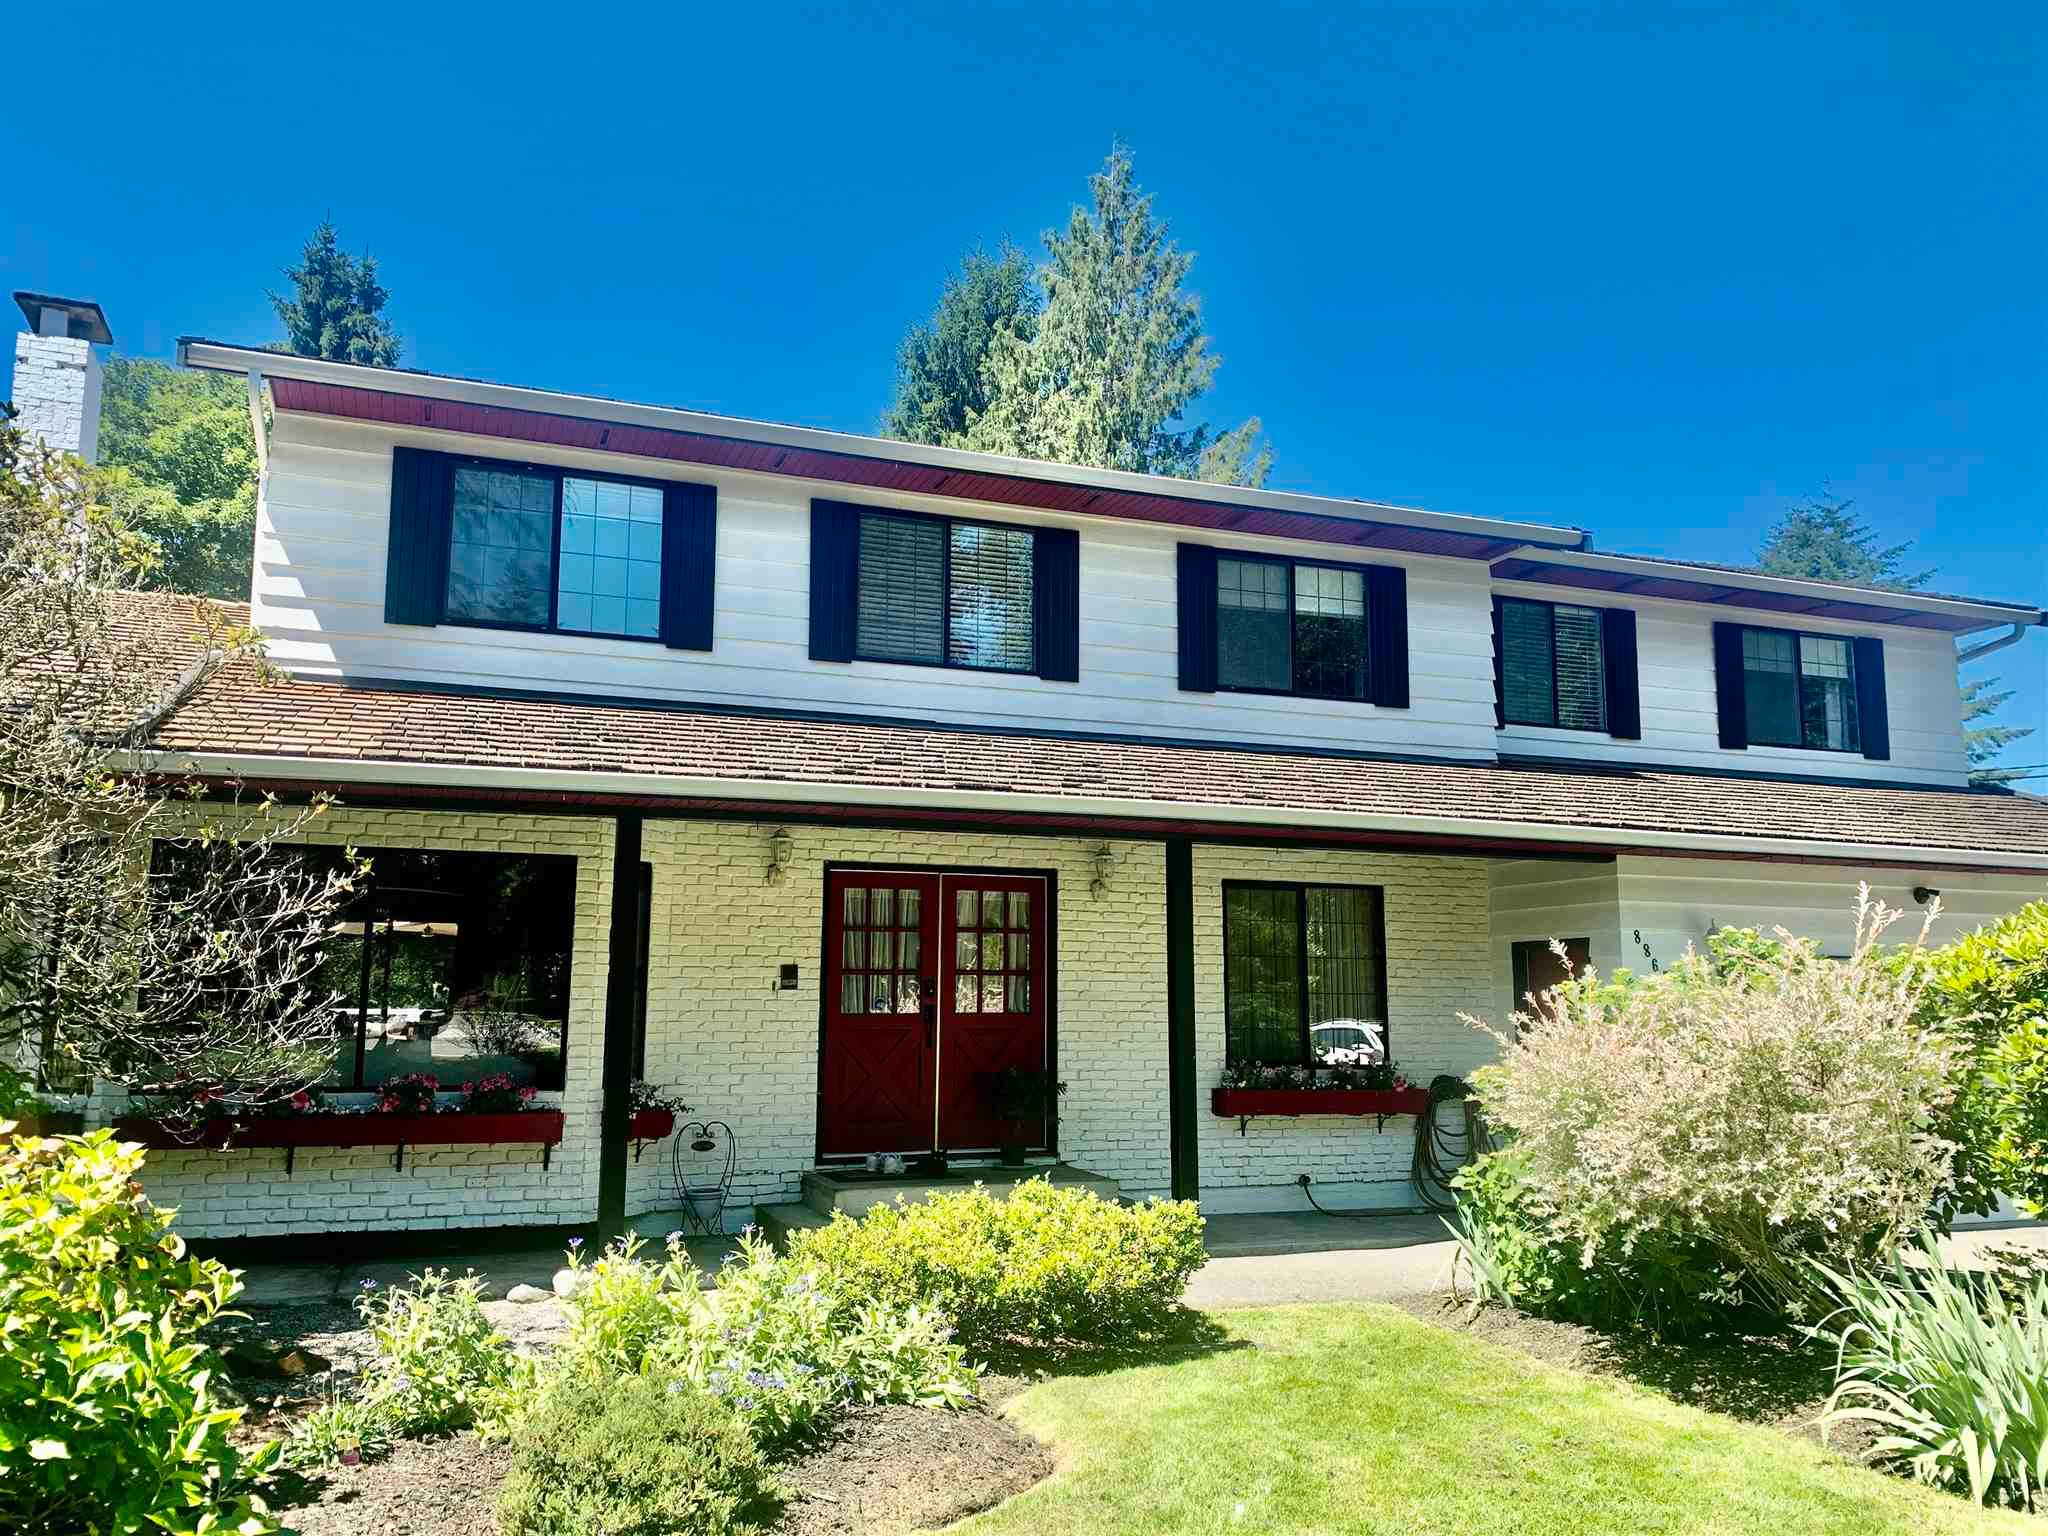 Main Photo: 8865 WRIGHT Street in Langley: Fort Langley House for sale : MLS®# R2596930